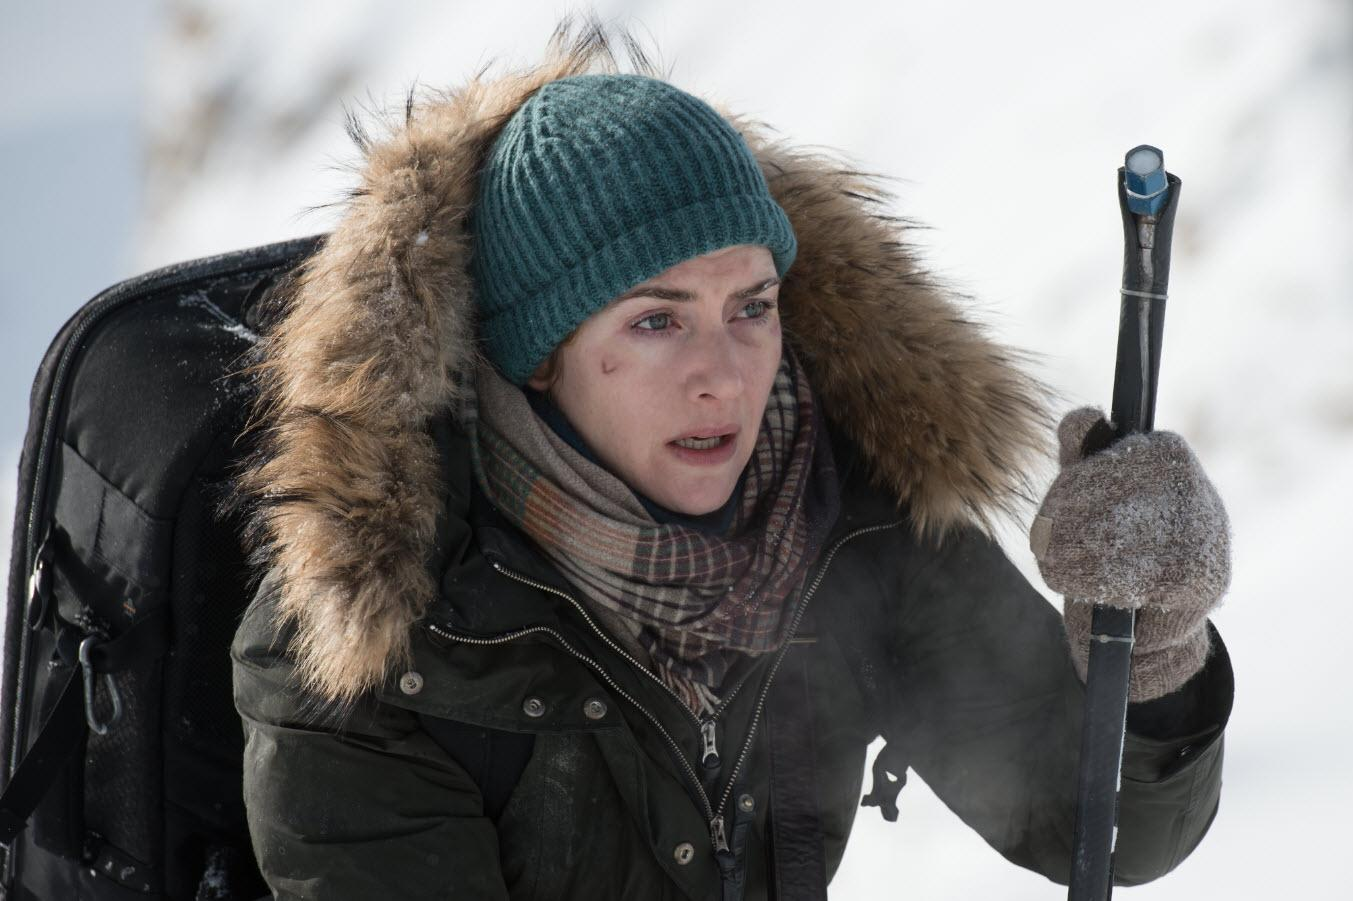 Kate Winslet in 'The Mountain Between Us' (credit: 20th Century Fox)